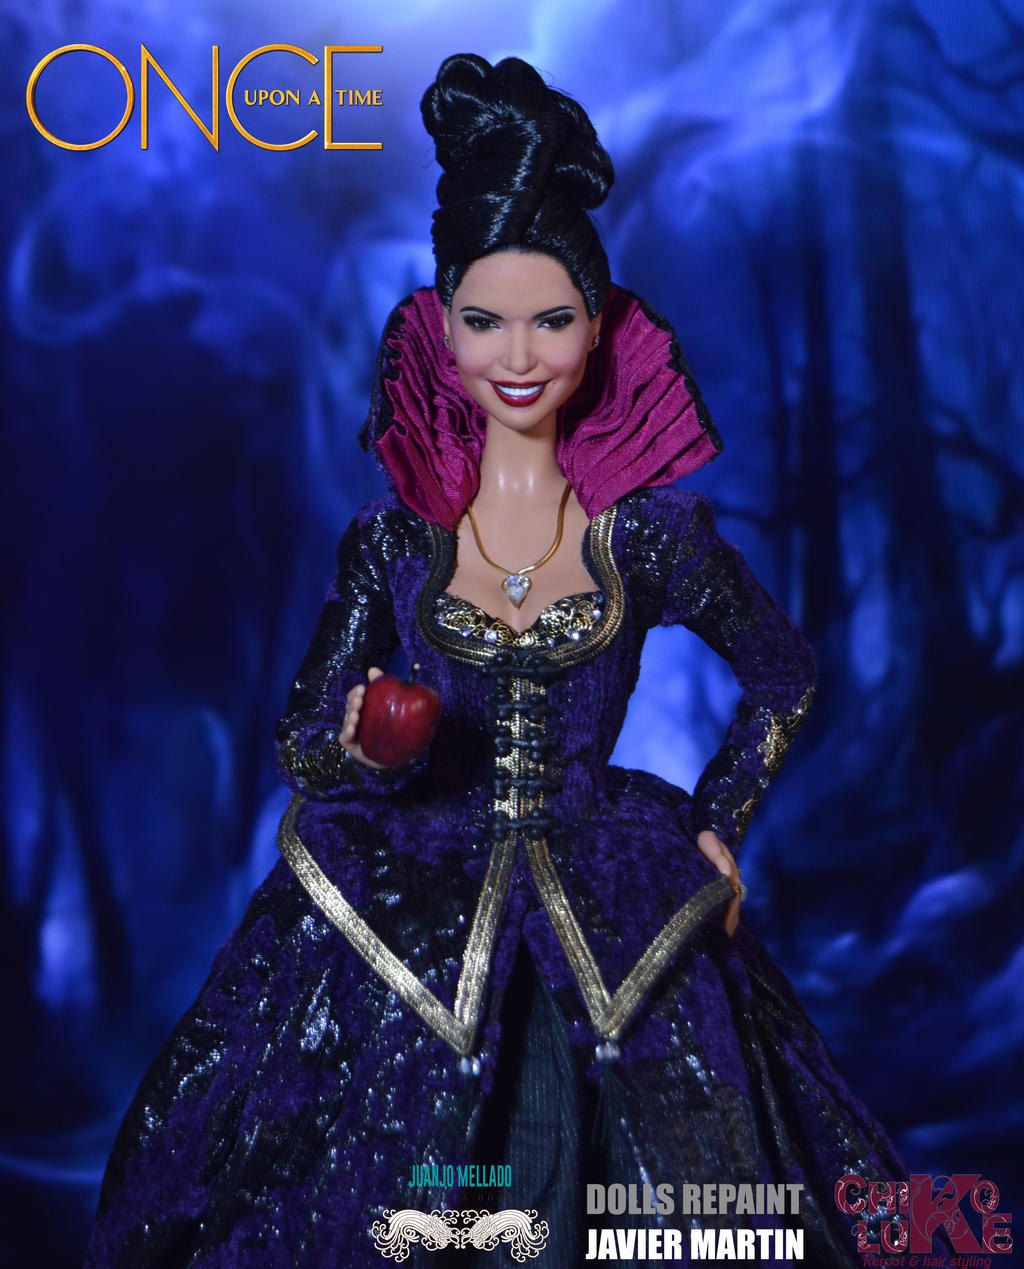 Ouat Wallpaper: Regina. The Evil Queen. Once Upon A Time. OOAK By